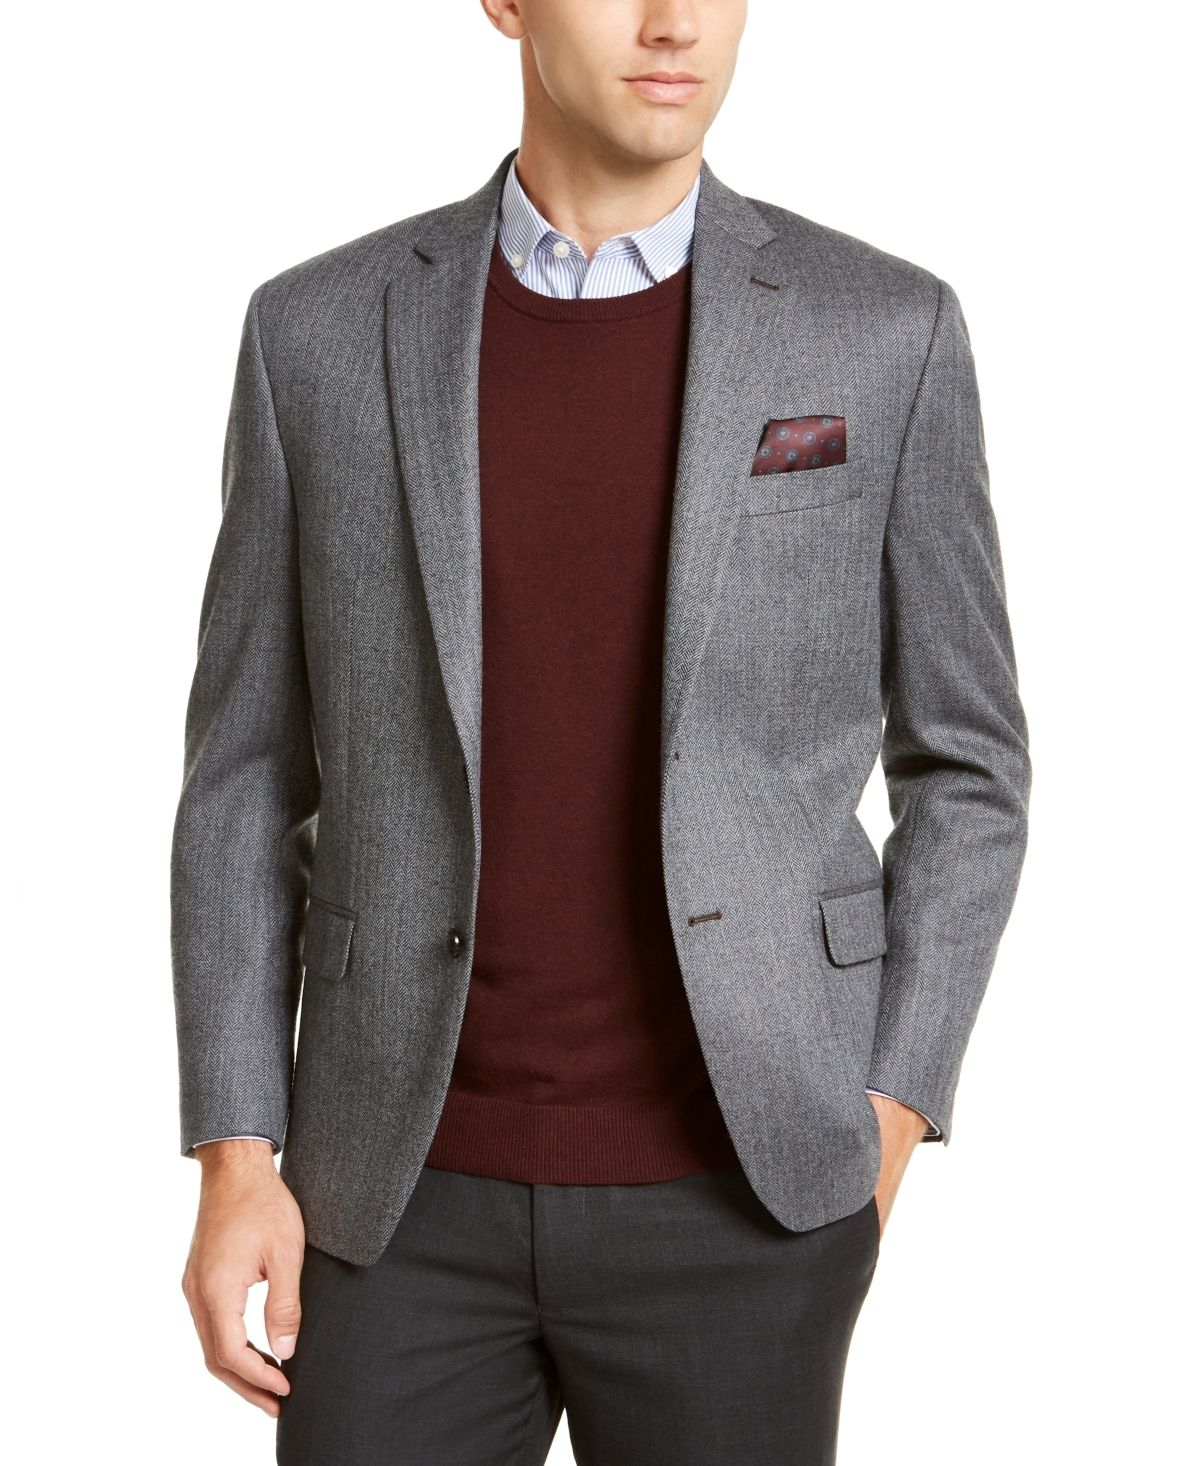 EX M/&S COLLECTION PERFORMANCE WOOL BLEND SINGLE BREASTED JACKET BLAZER REGULAR